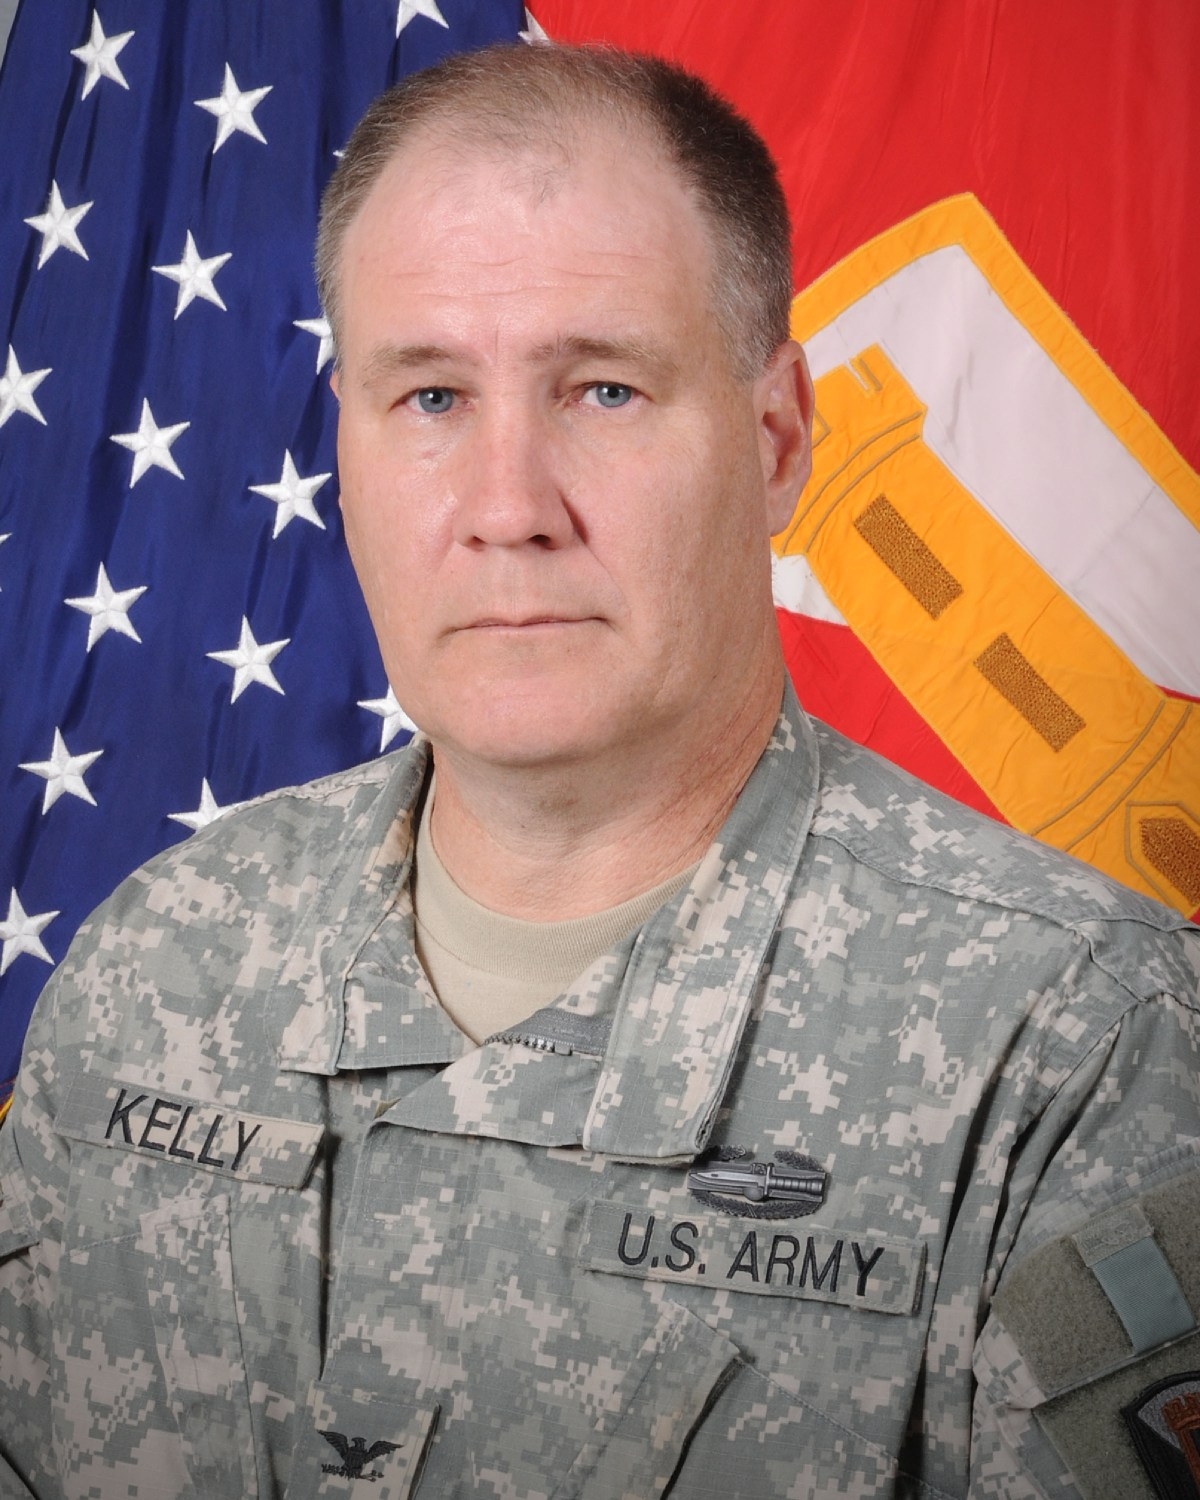 Col. Trent Kelly